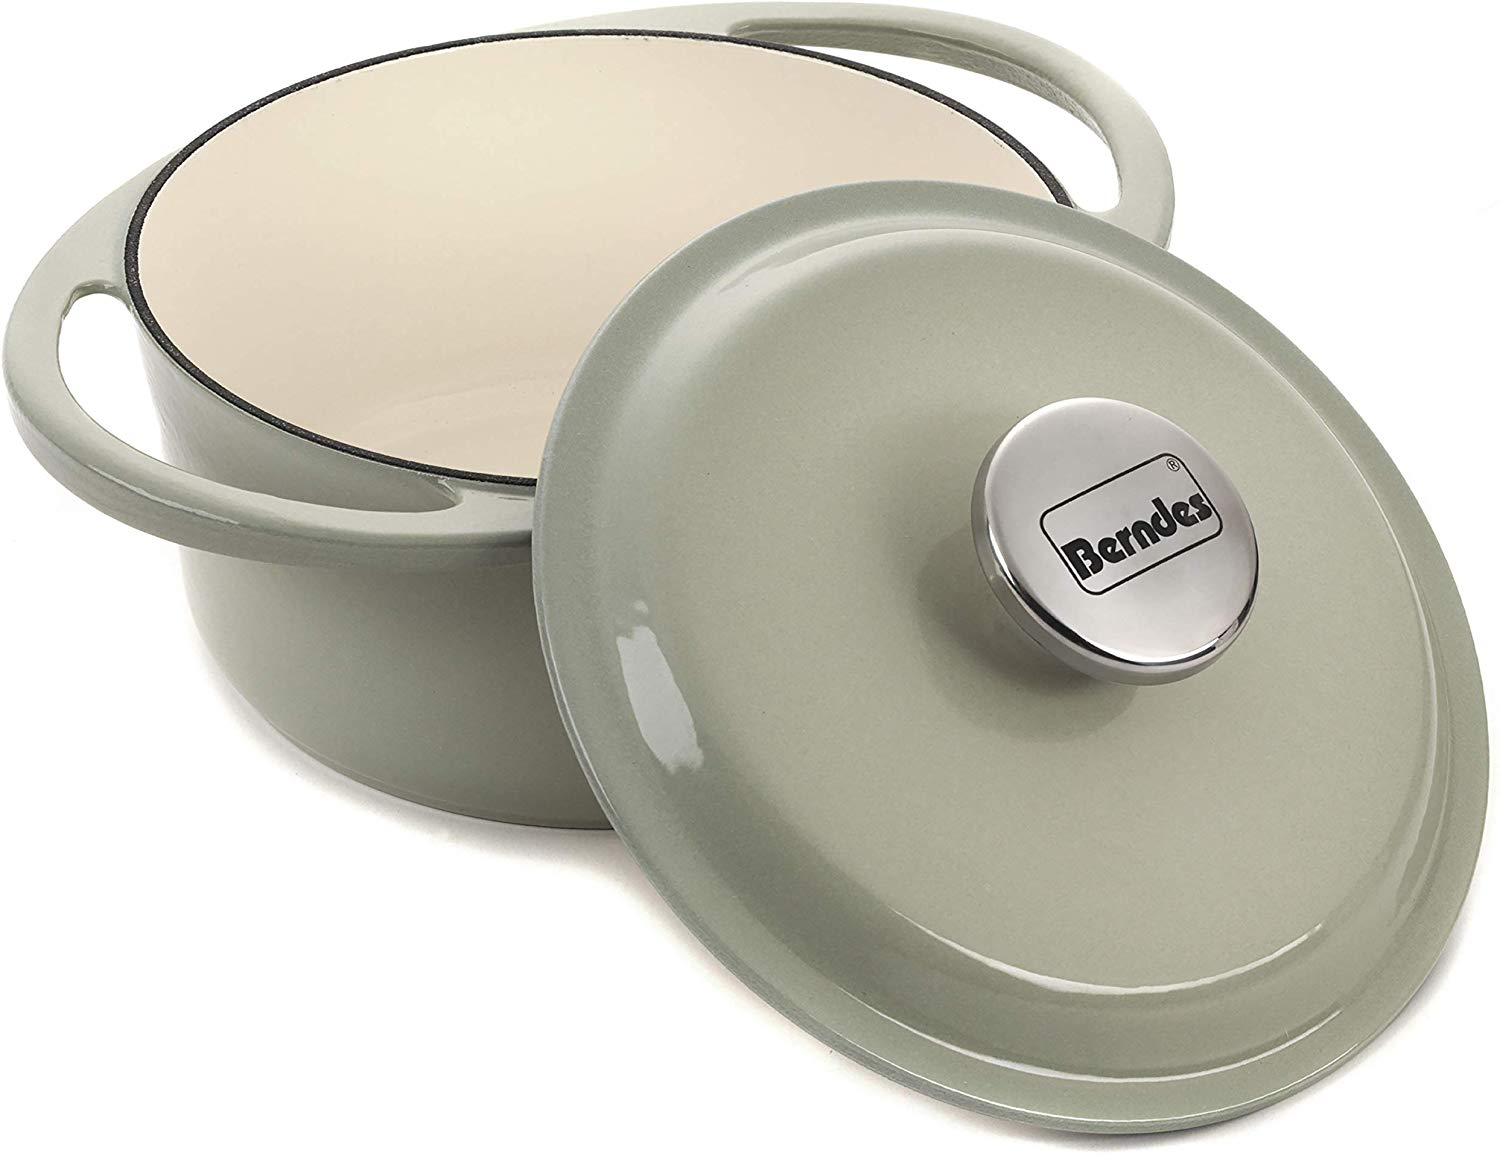 Berndes Round Casserole Dish with Lid, 20cm, 2.4 L for £19.95